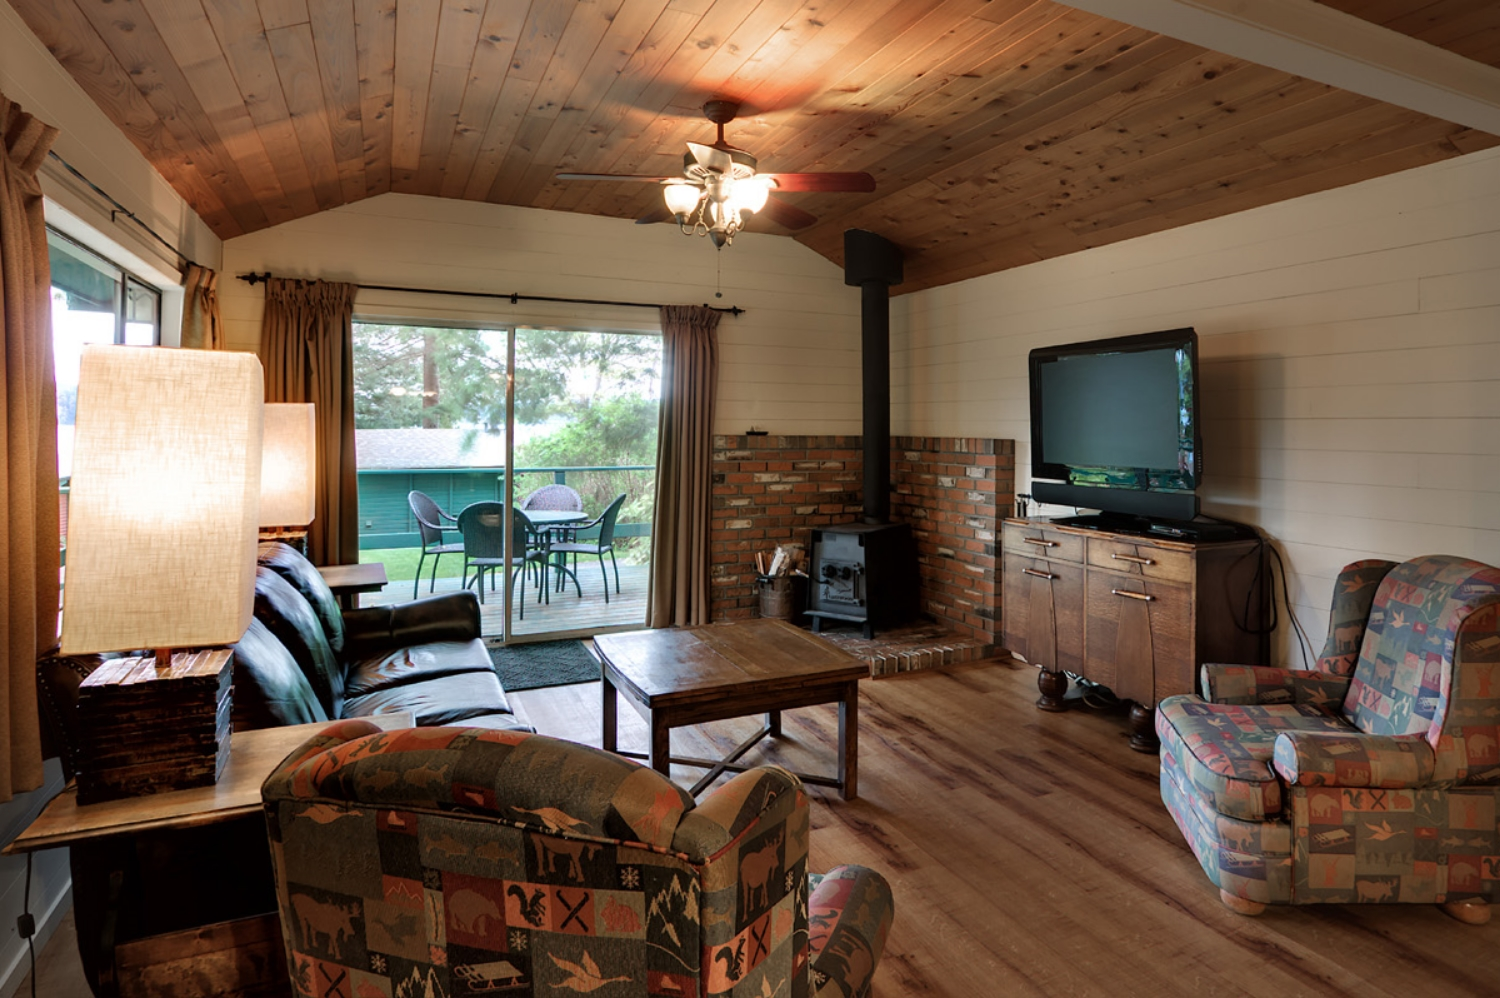 CABIN 7 - Four Bedrooms  Large living and dining room, great for families or a group. From $259-$315